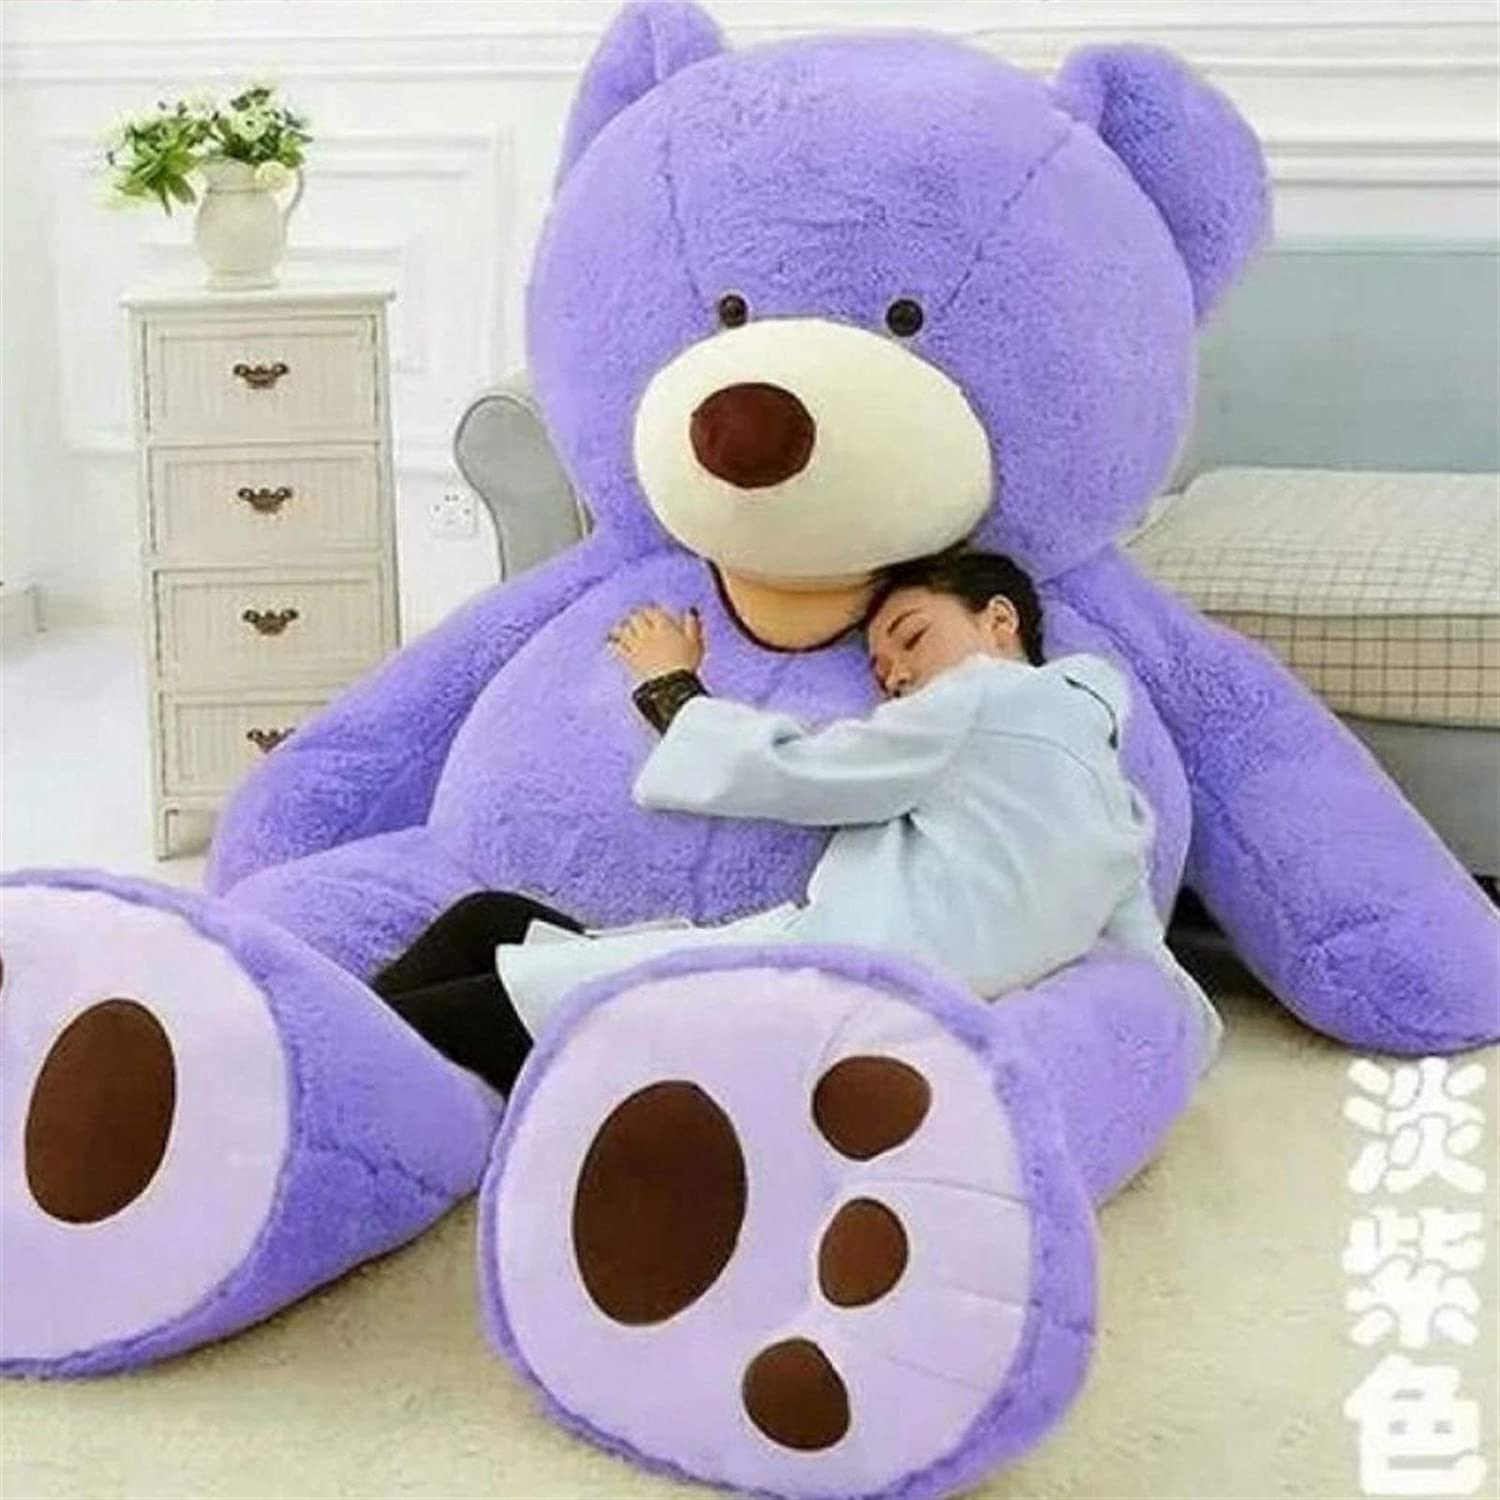 Comfortable and Durable Giant Big Pl Bear Stitched Unfilled Outstanding Skin Popular product